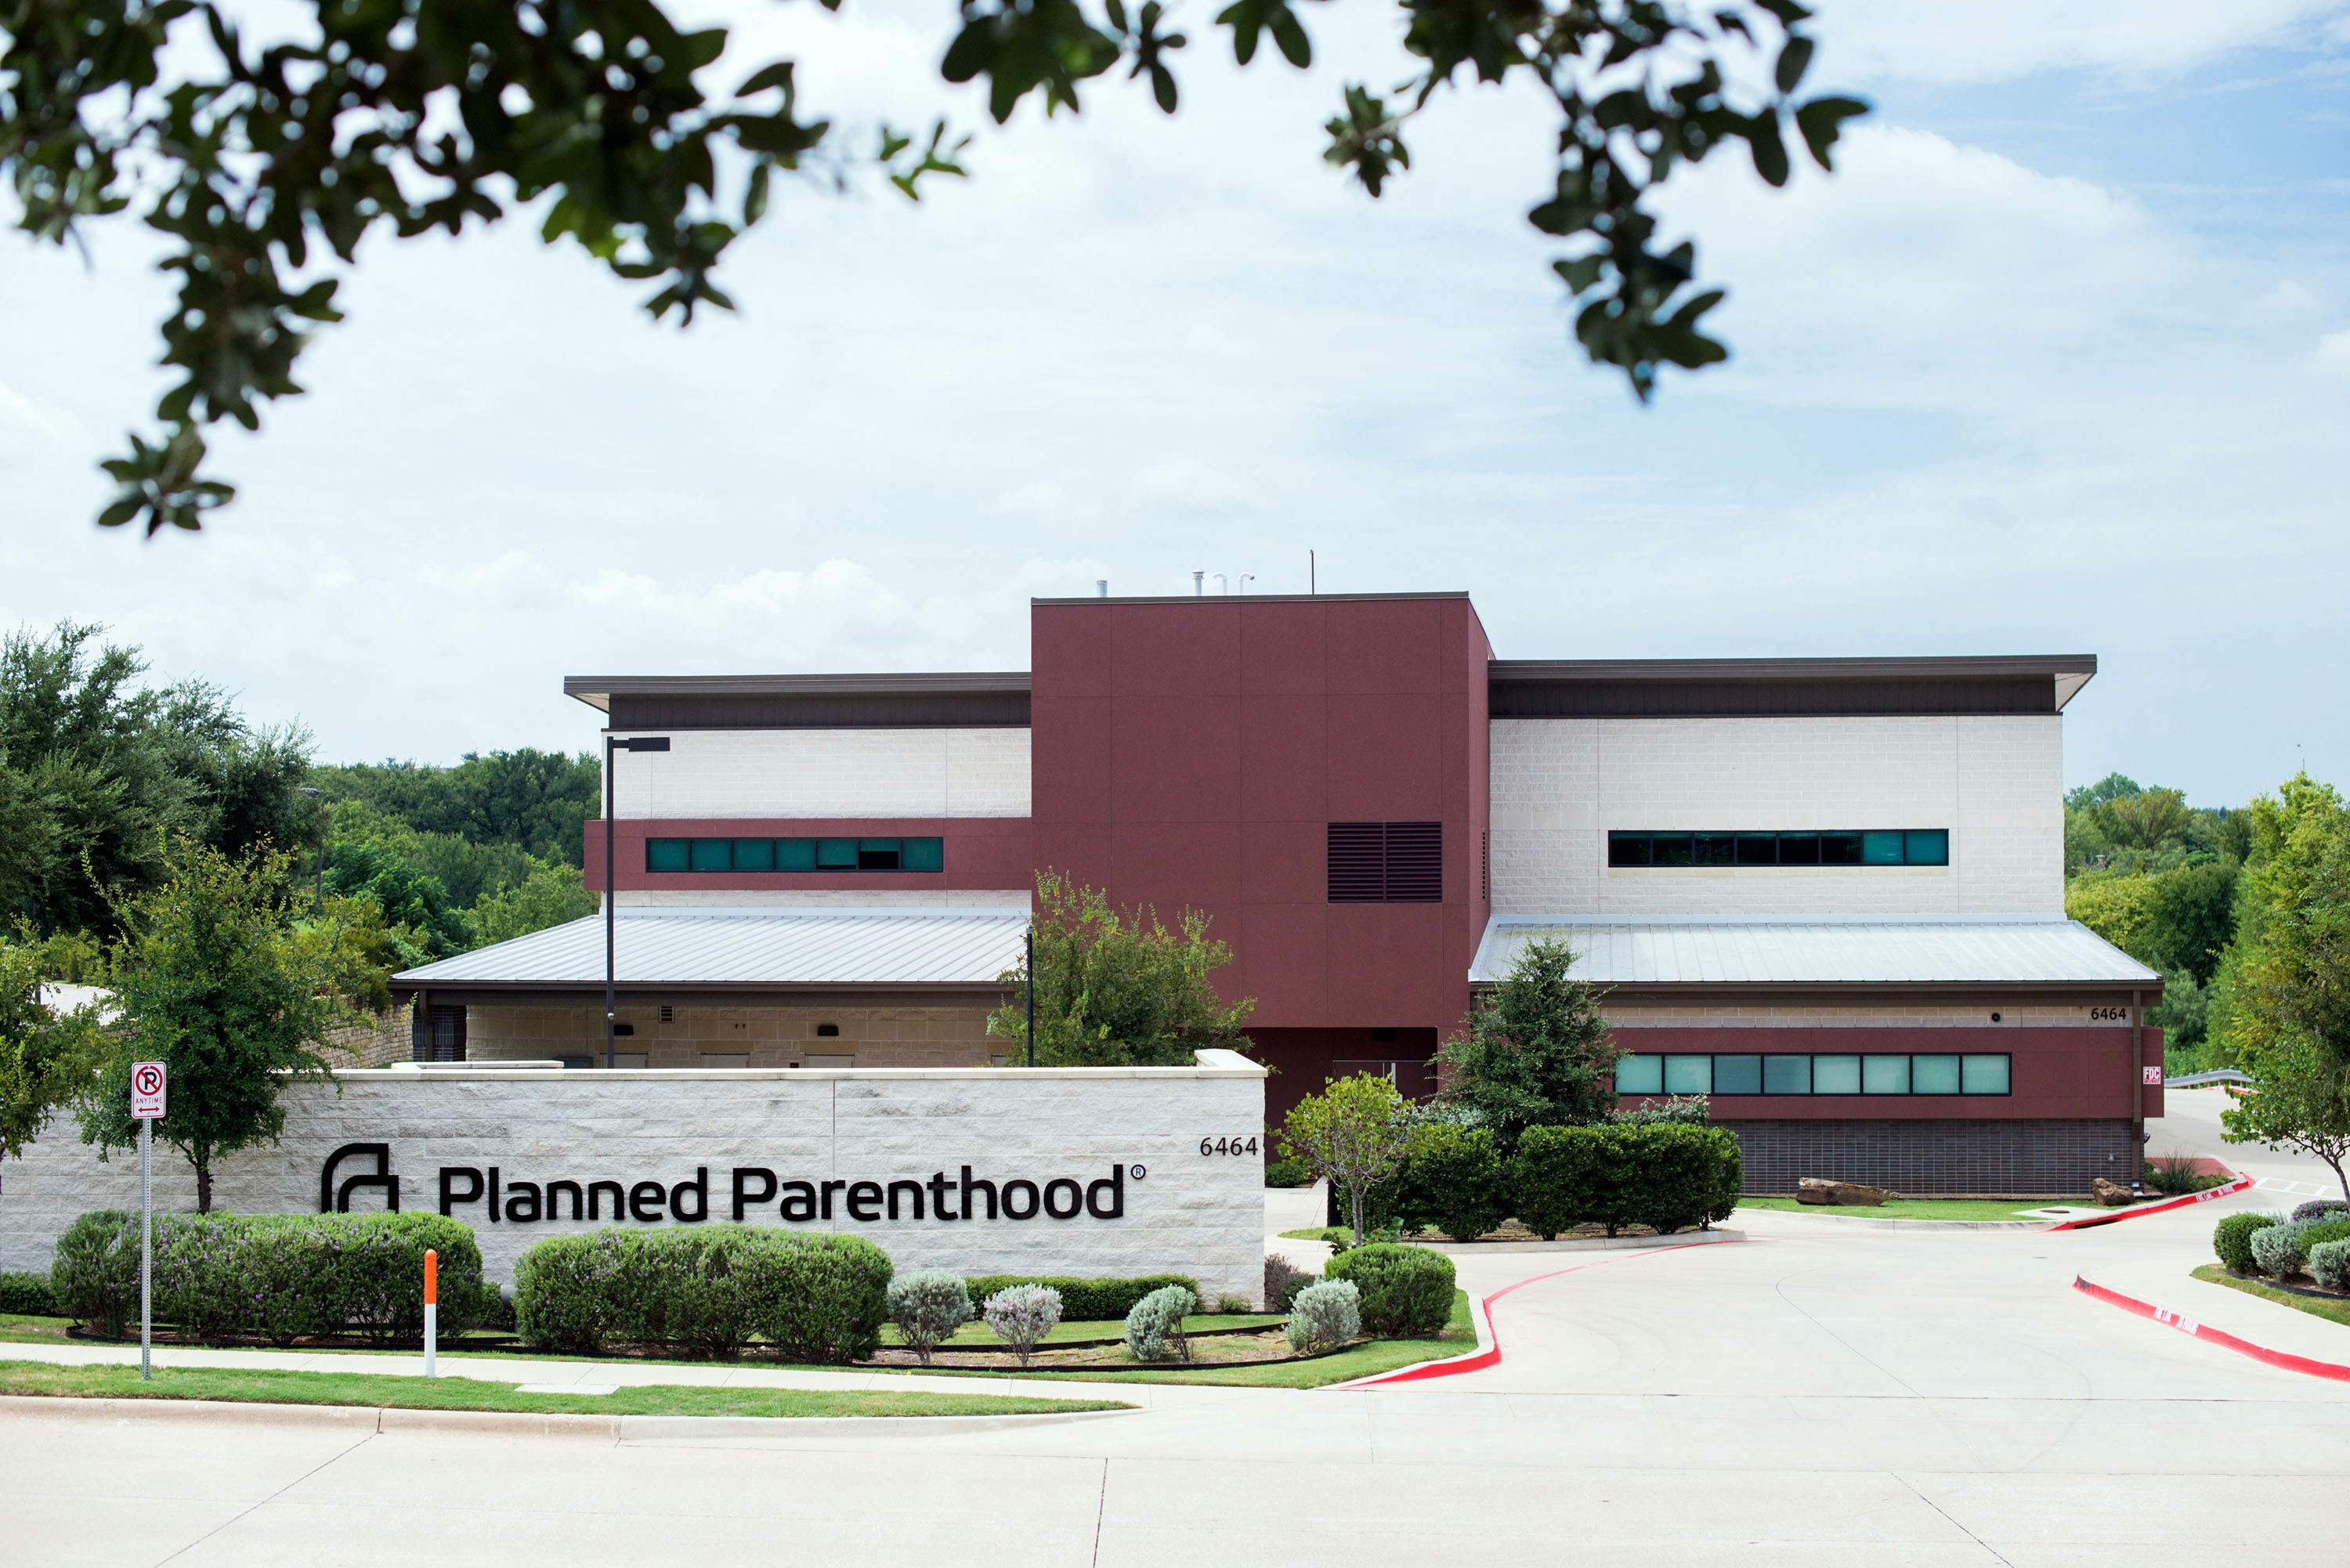 FORT WORTH, TEXAS - AUGUST 17: Exterior of the Planned Parenthood facility in Fort Worth, TX, on Thursday, August 17, 2017.Aubrey Reinhardt was a 20-year-old senior at Texas Tech University in Lubbock, TX, she sought birth control from the university clinic and says she found herself facing the ideological leanings of a clinic physician whom hesitated to prescribe the medication. As a result, Reinhardt visited one of the nearest Planned Parenthood facilities which was located four hours east in Fort Worth, TX.